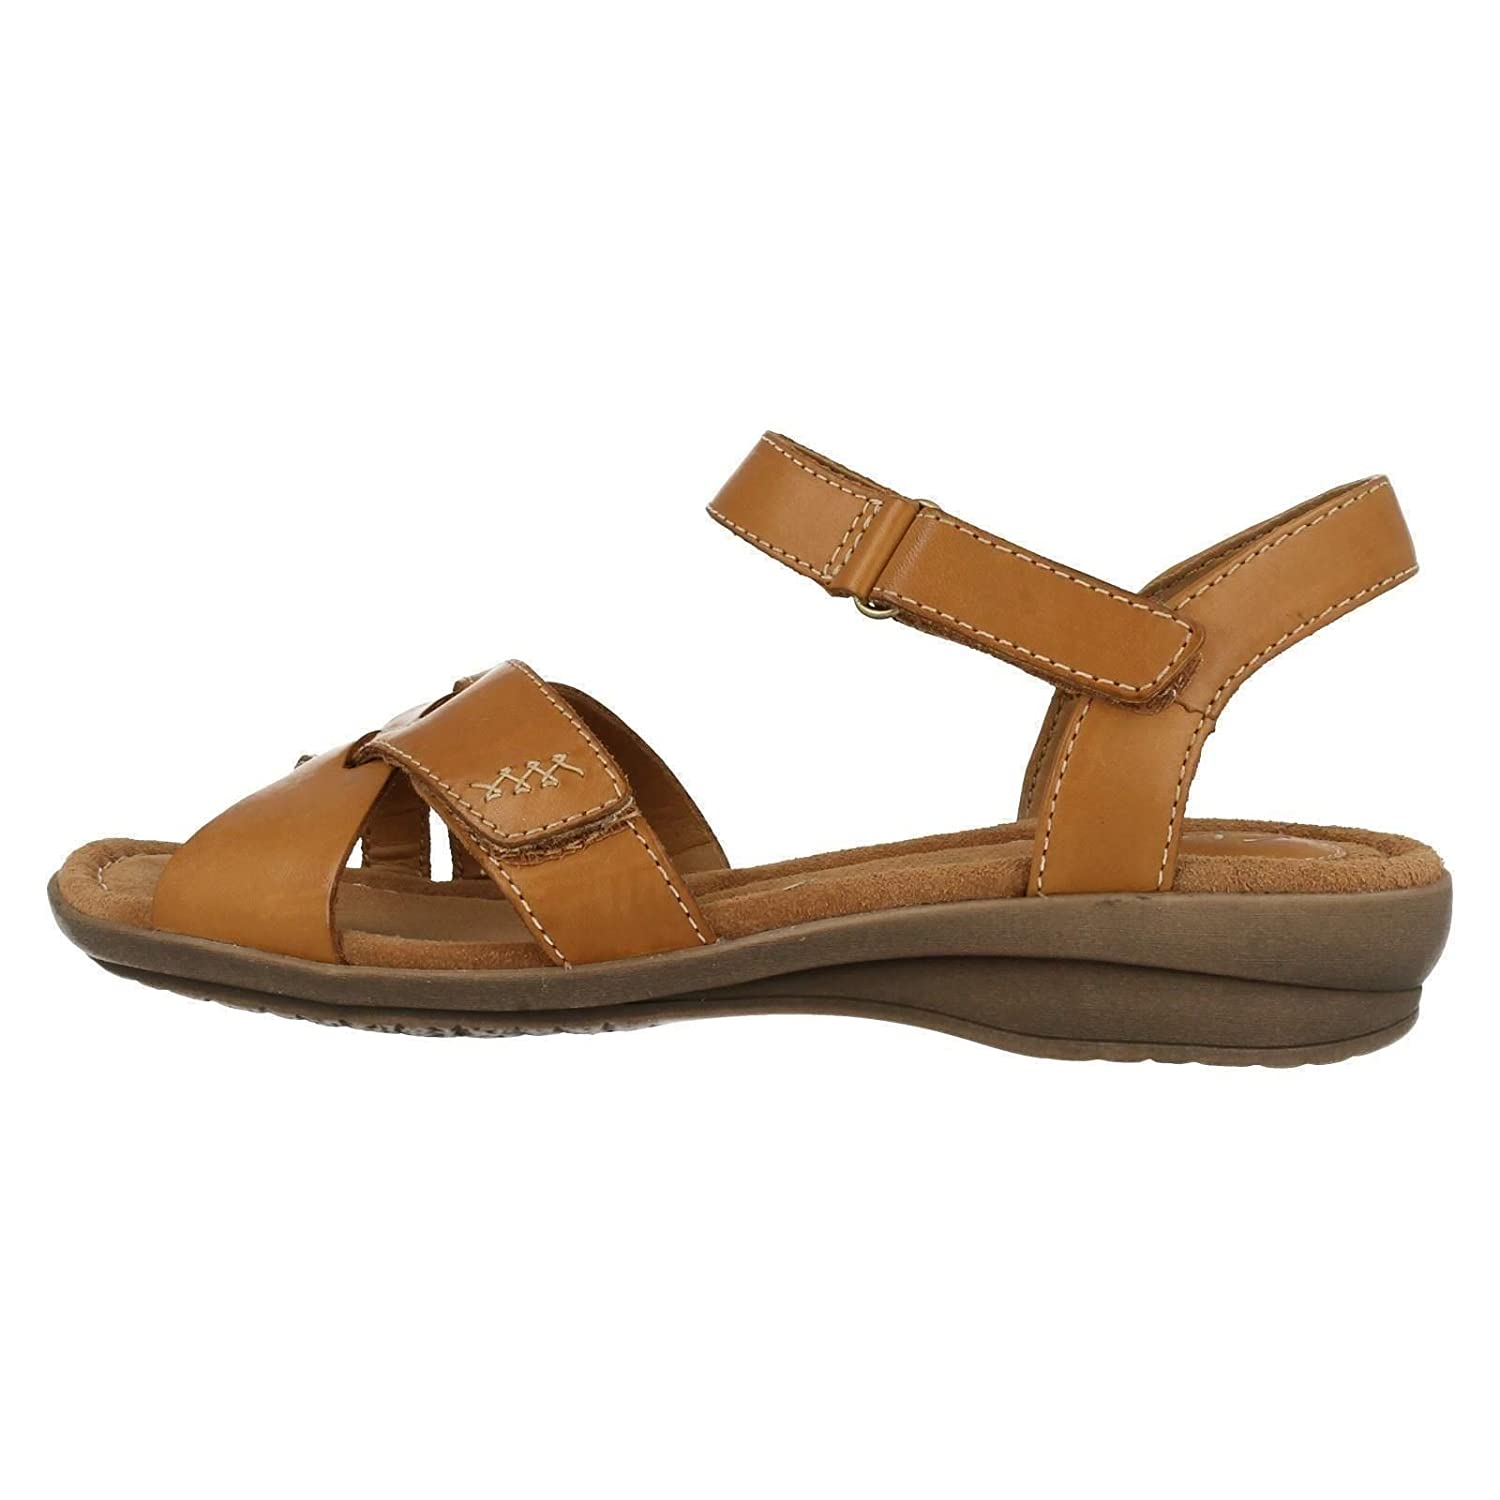 13485148d4be Clarks Ladies Sandals Reid Laguna  Amazon.co.uk  Shoes   Bags